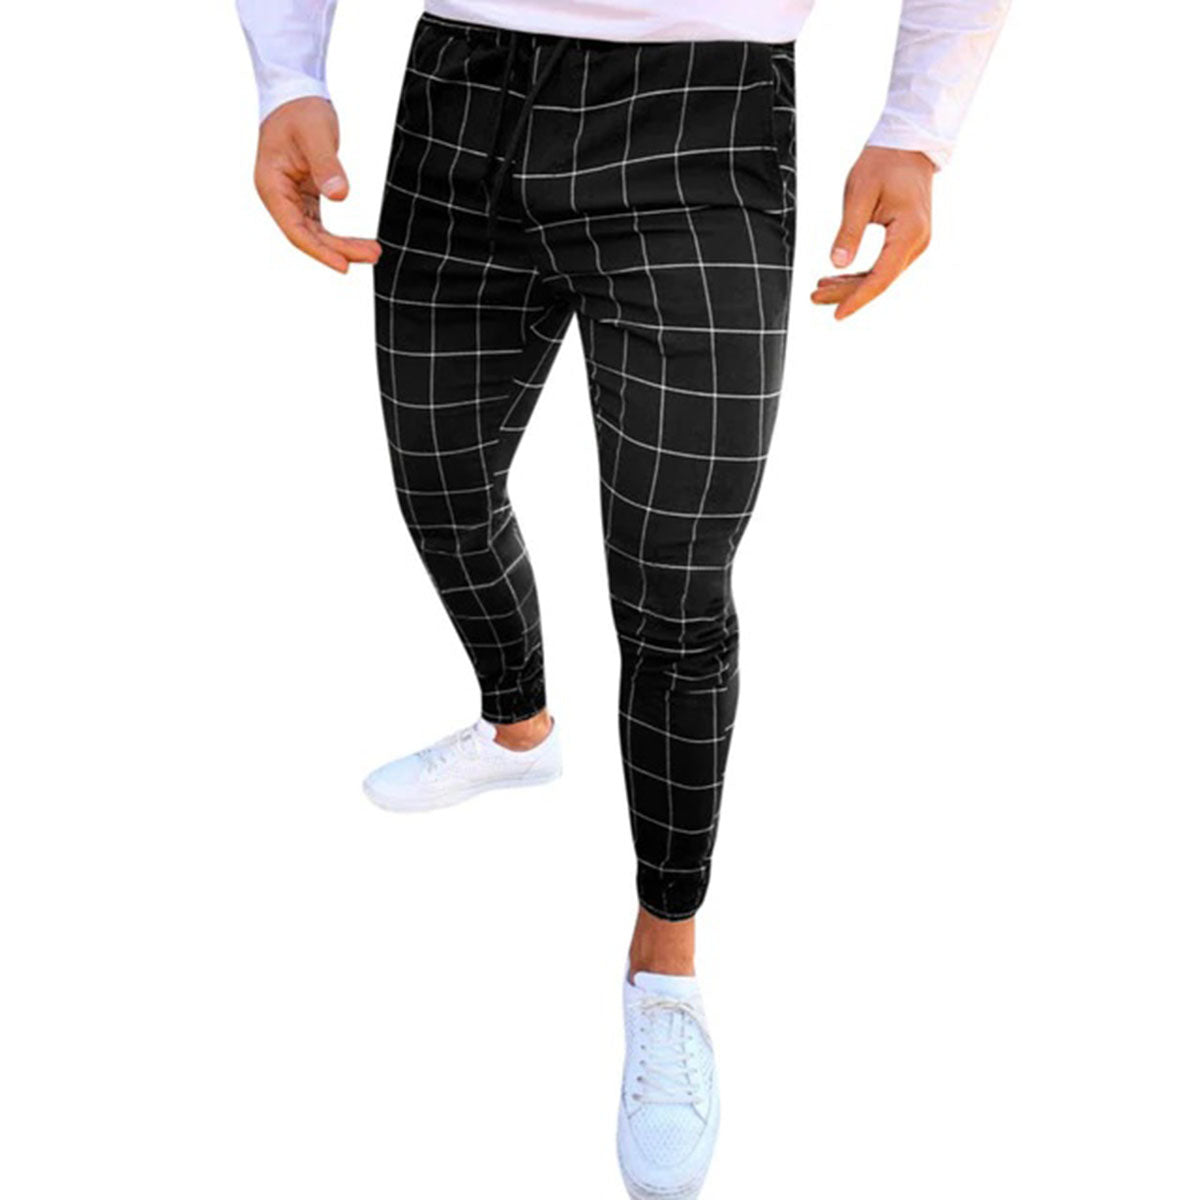 Mens Slim Fit Chinos Super Comfy Stretch Pants